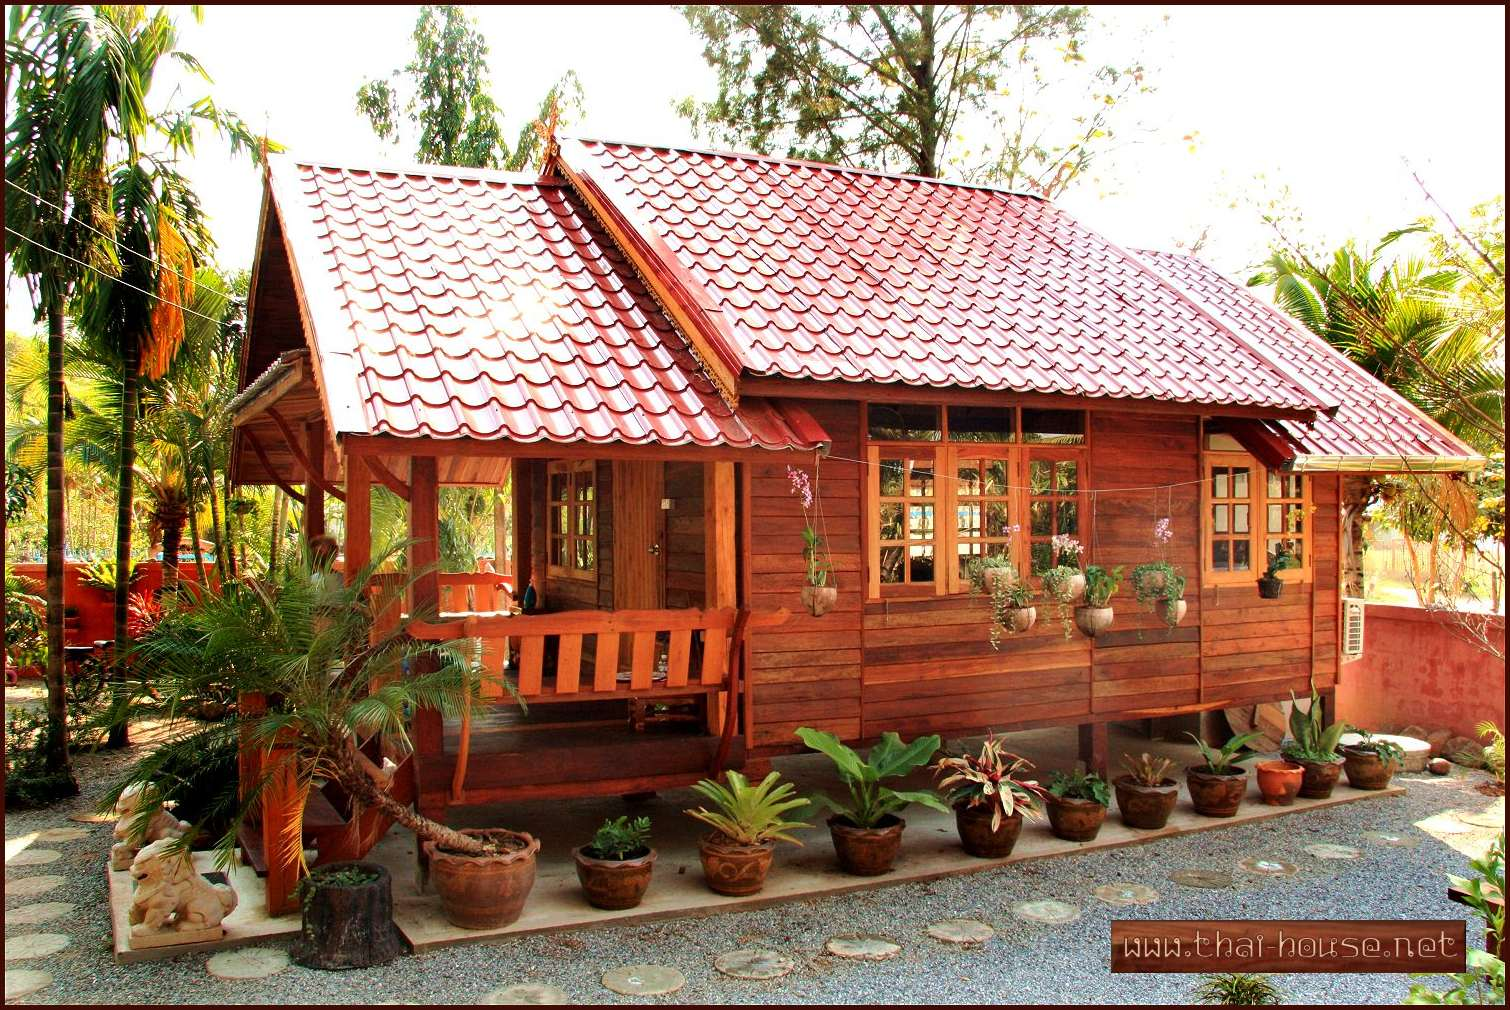 Miraculous Thai Style Wooden House Plans Design Care House And Home Largest Home Design Picture Inspirations Pitcheantrous